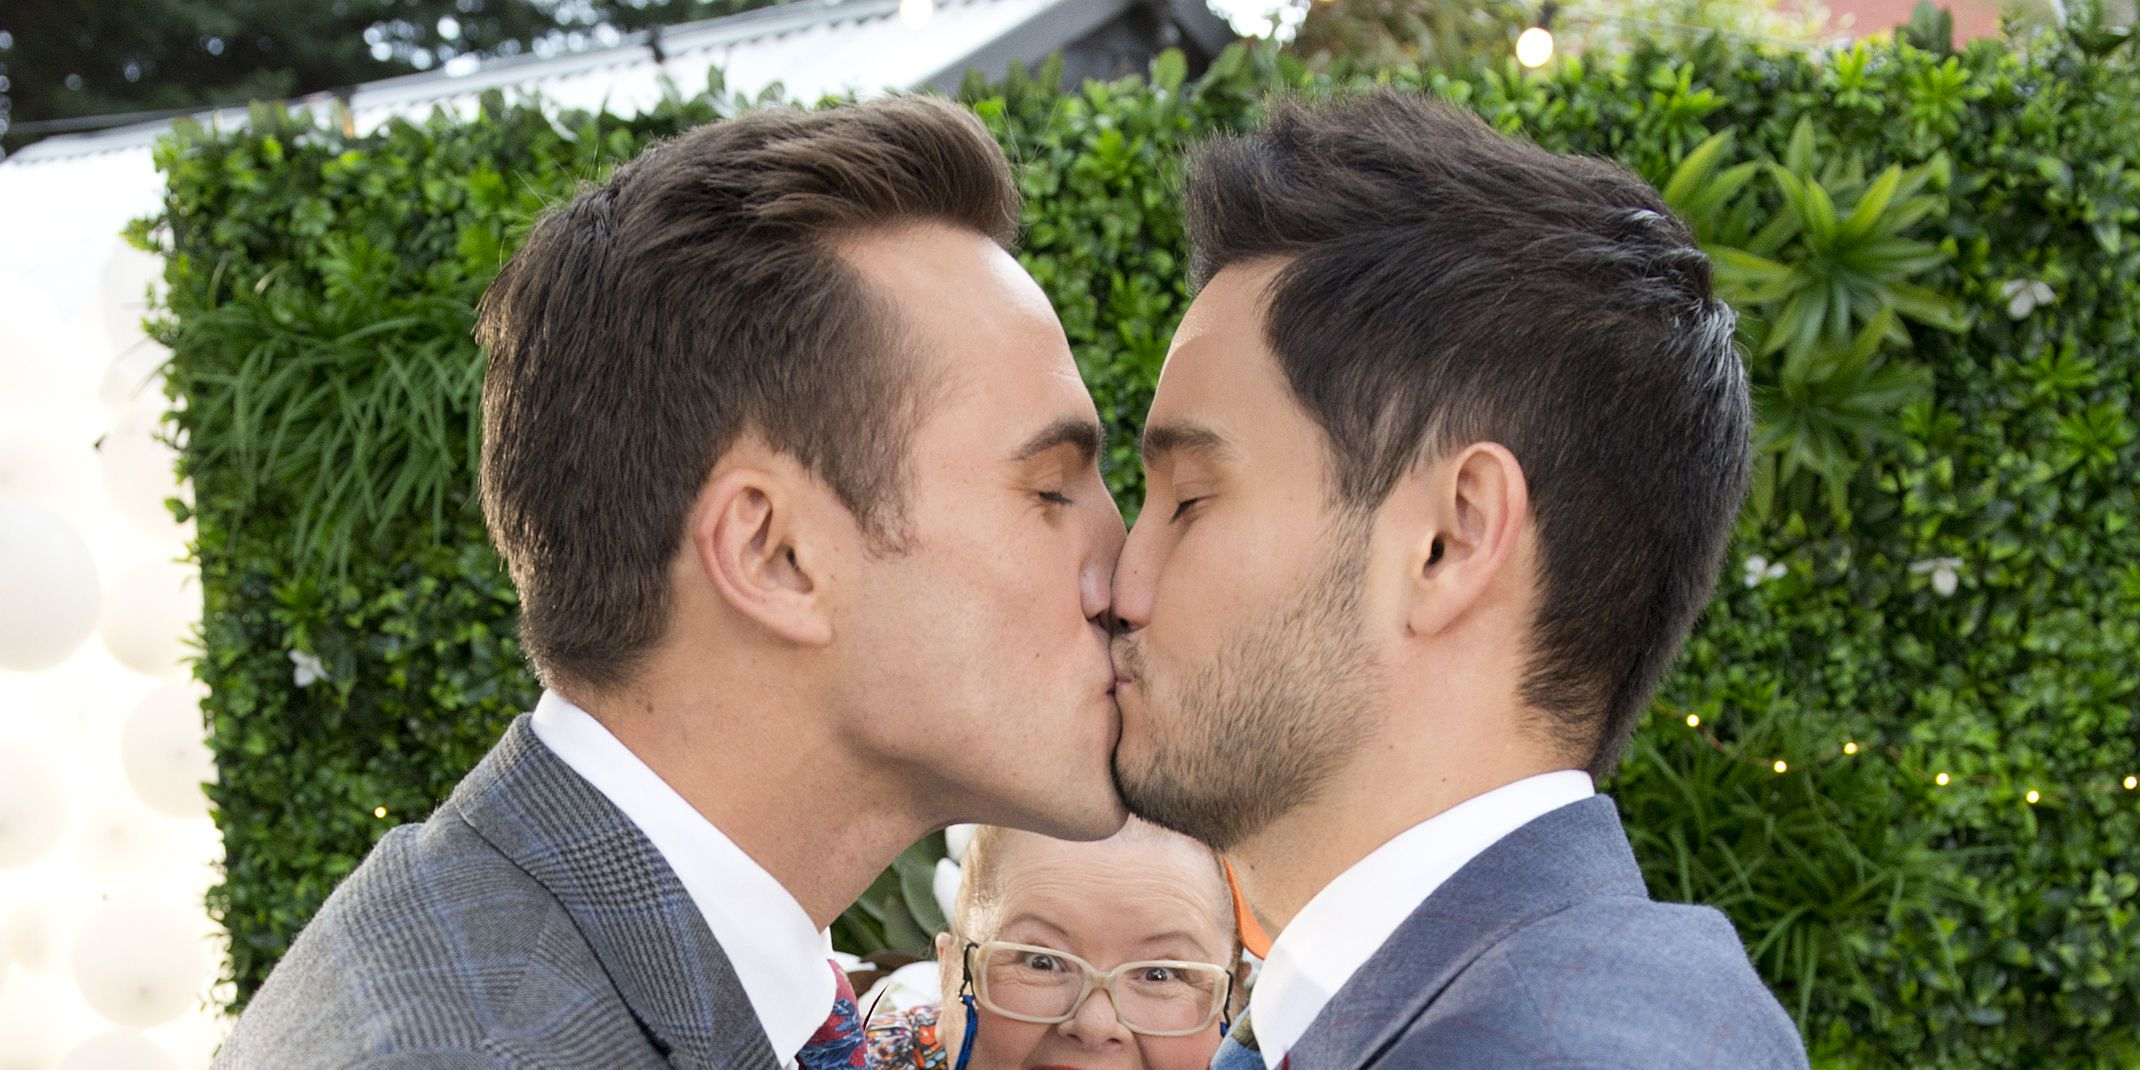 David Tanaka and Aaron Brennan's wedding in Neighbours